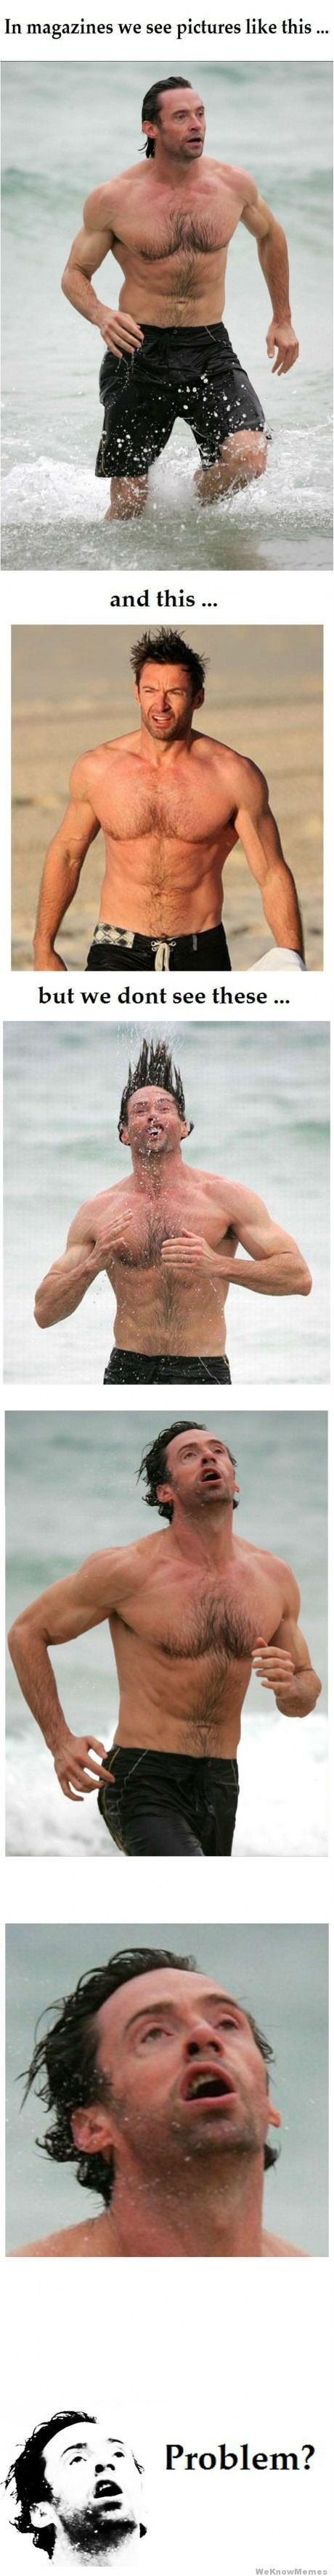 I. can't. stop. laughing! I'm literally crying and having trouble breathing. I don't know why this is so funny to me.